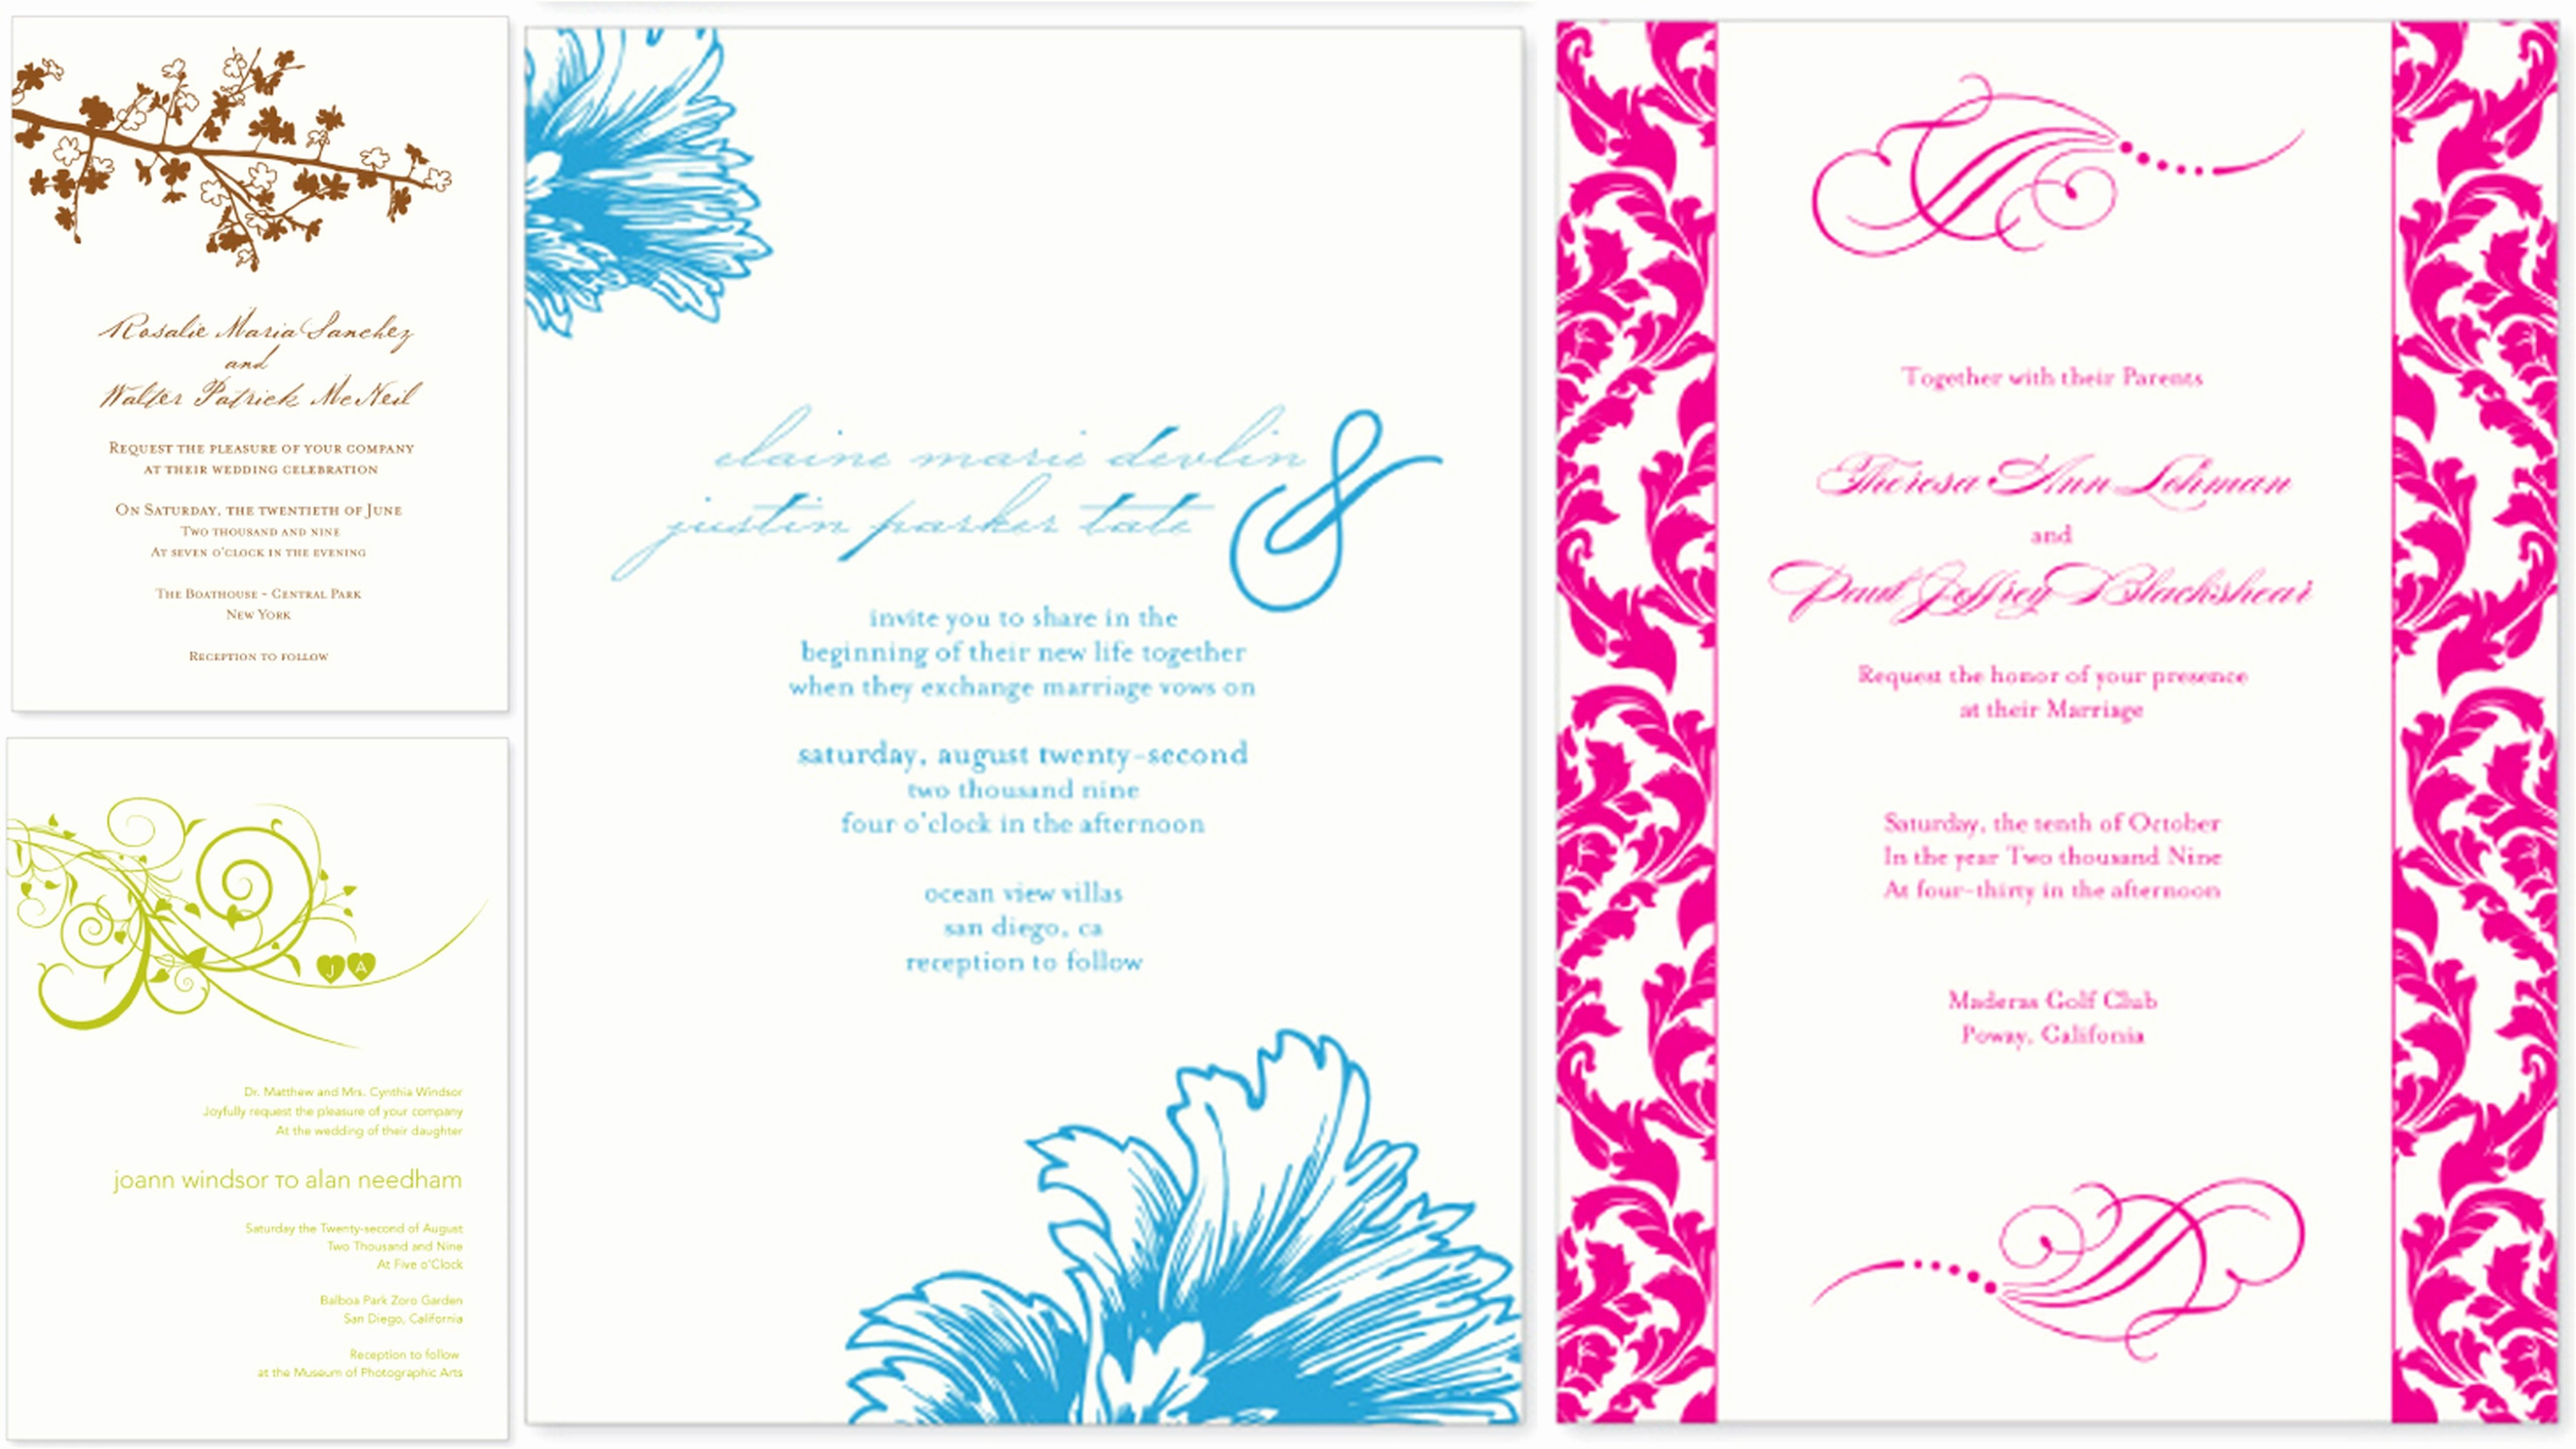 Templates for Cards Free Downloads Unique Marriage Invitation Card Marriage Invitation Card